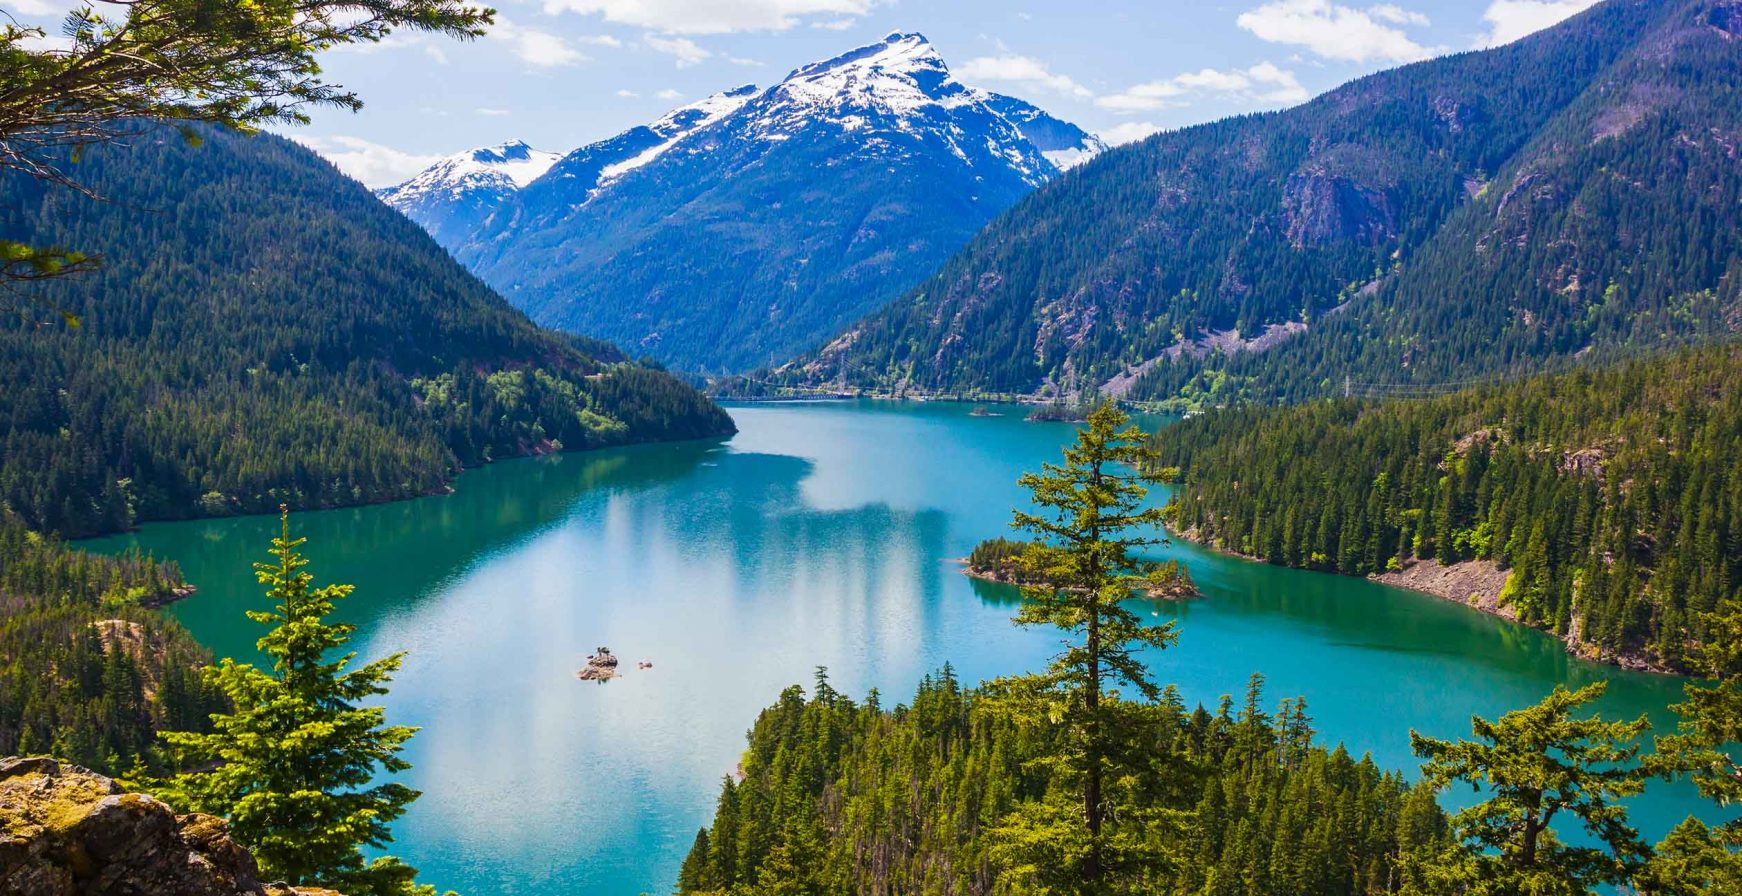 The American Alps – NEW!